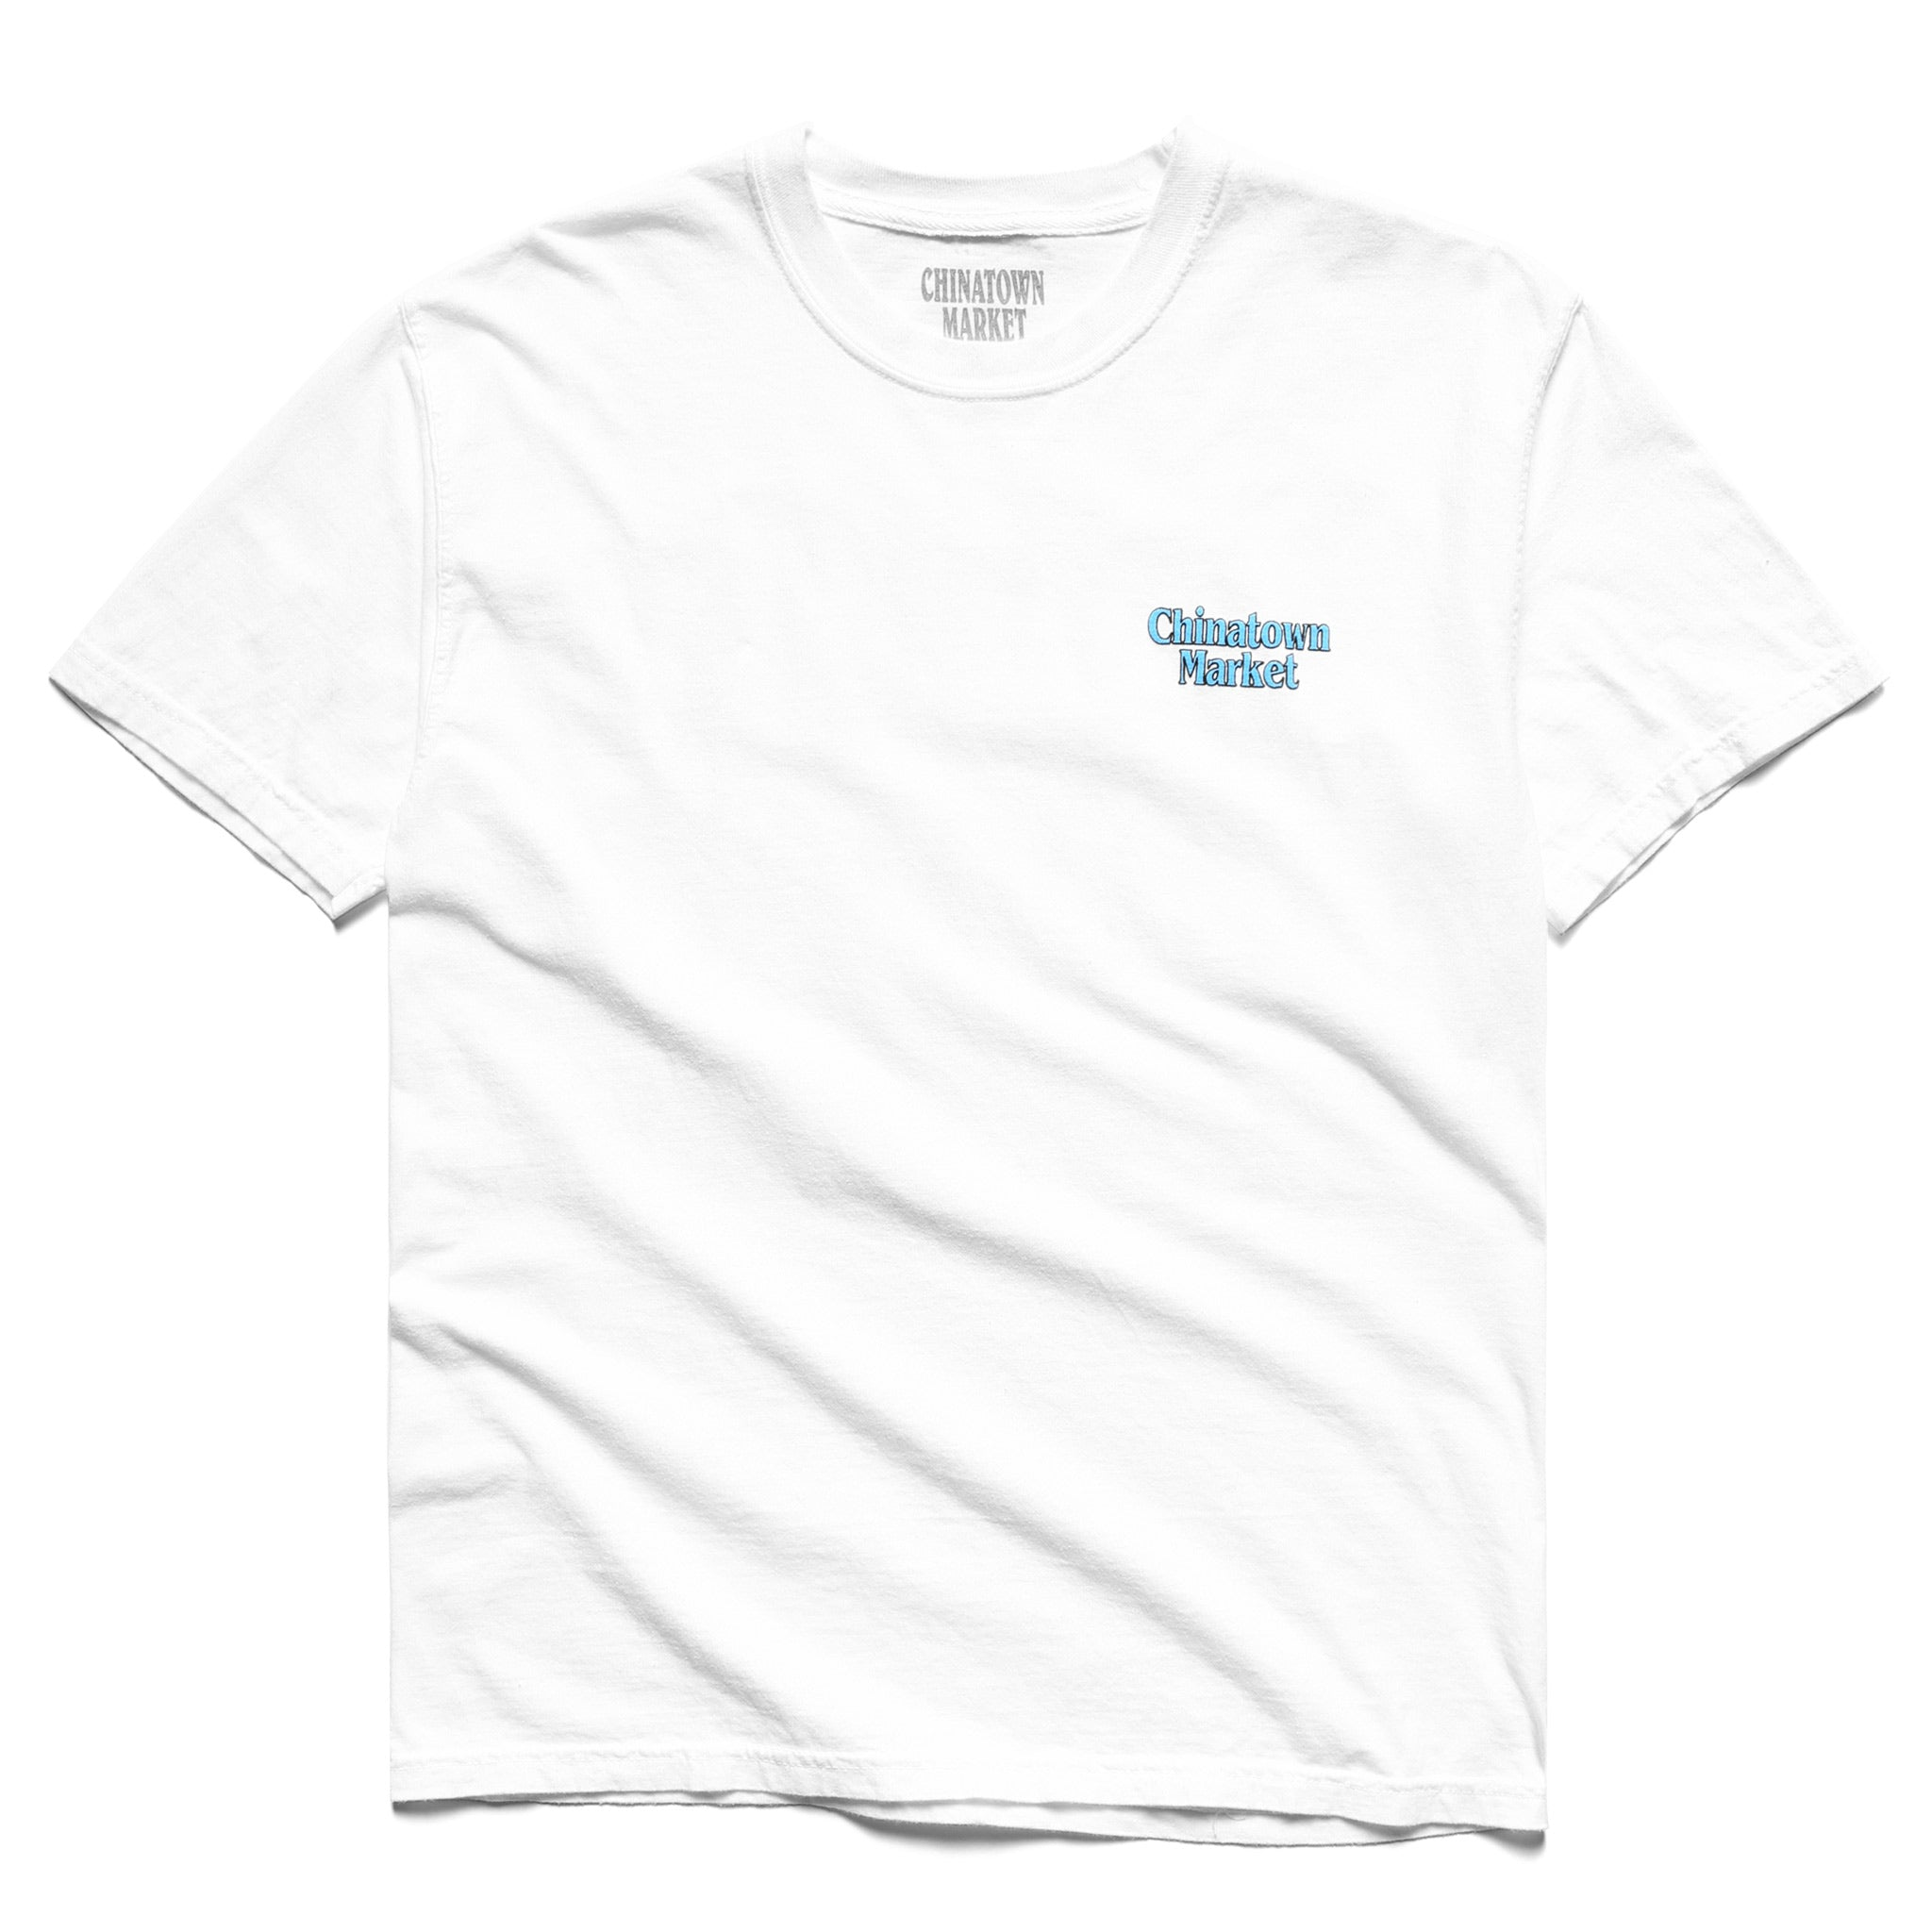 88883575 Best T Shirt Printing Services - DREAMWORKS